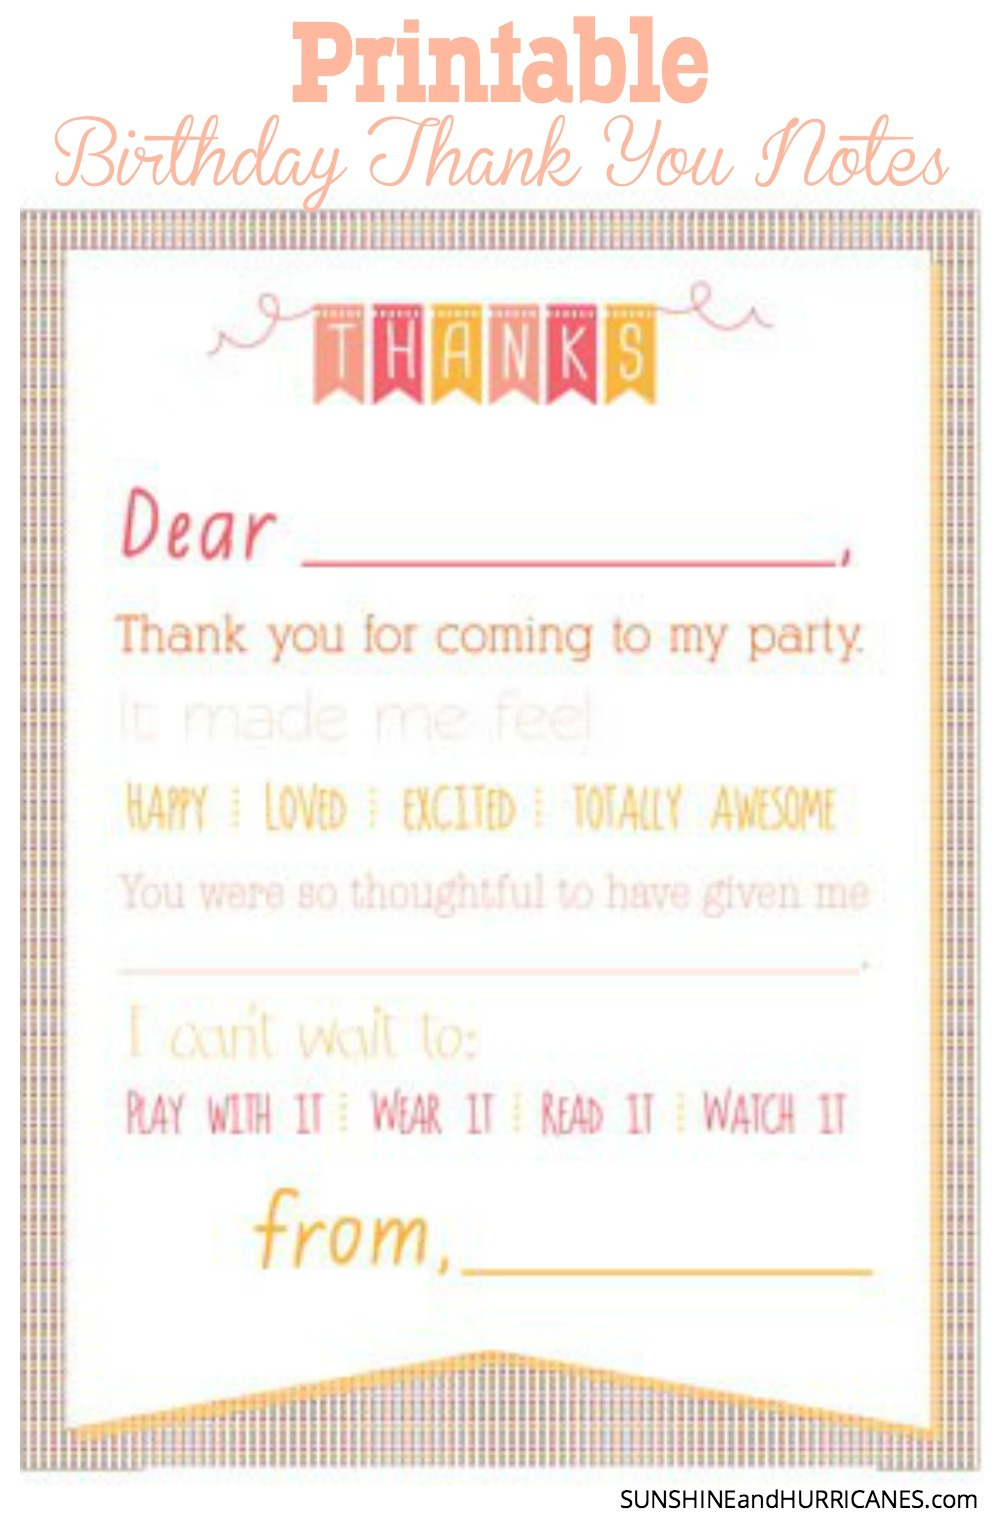 Printable Birthday Thank You Notes